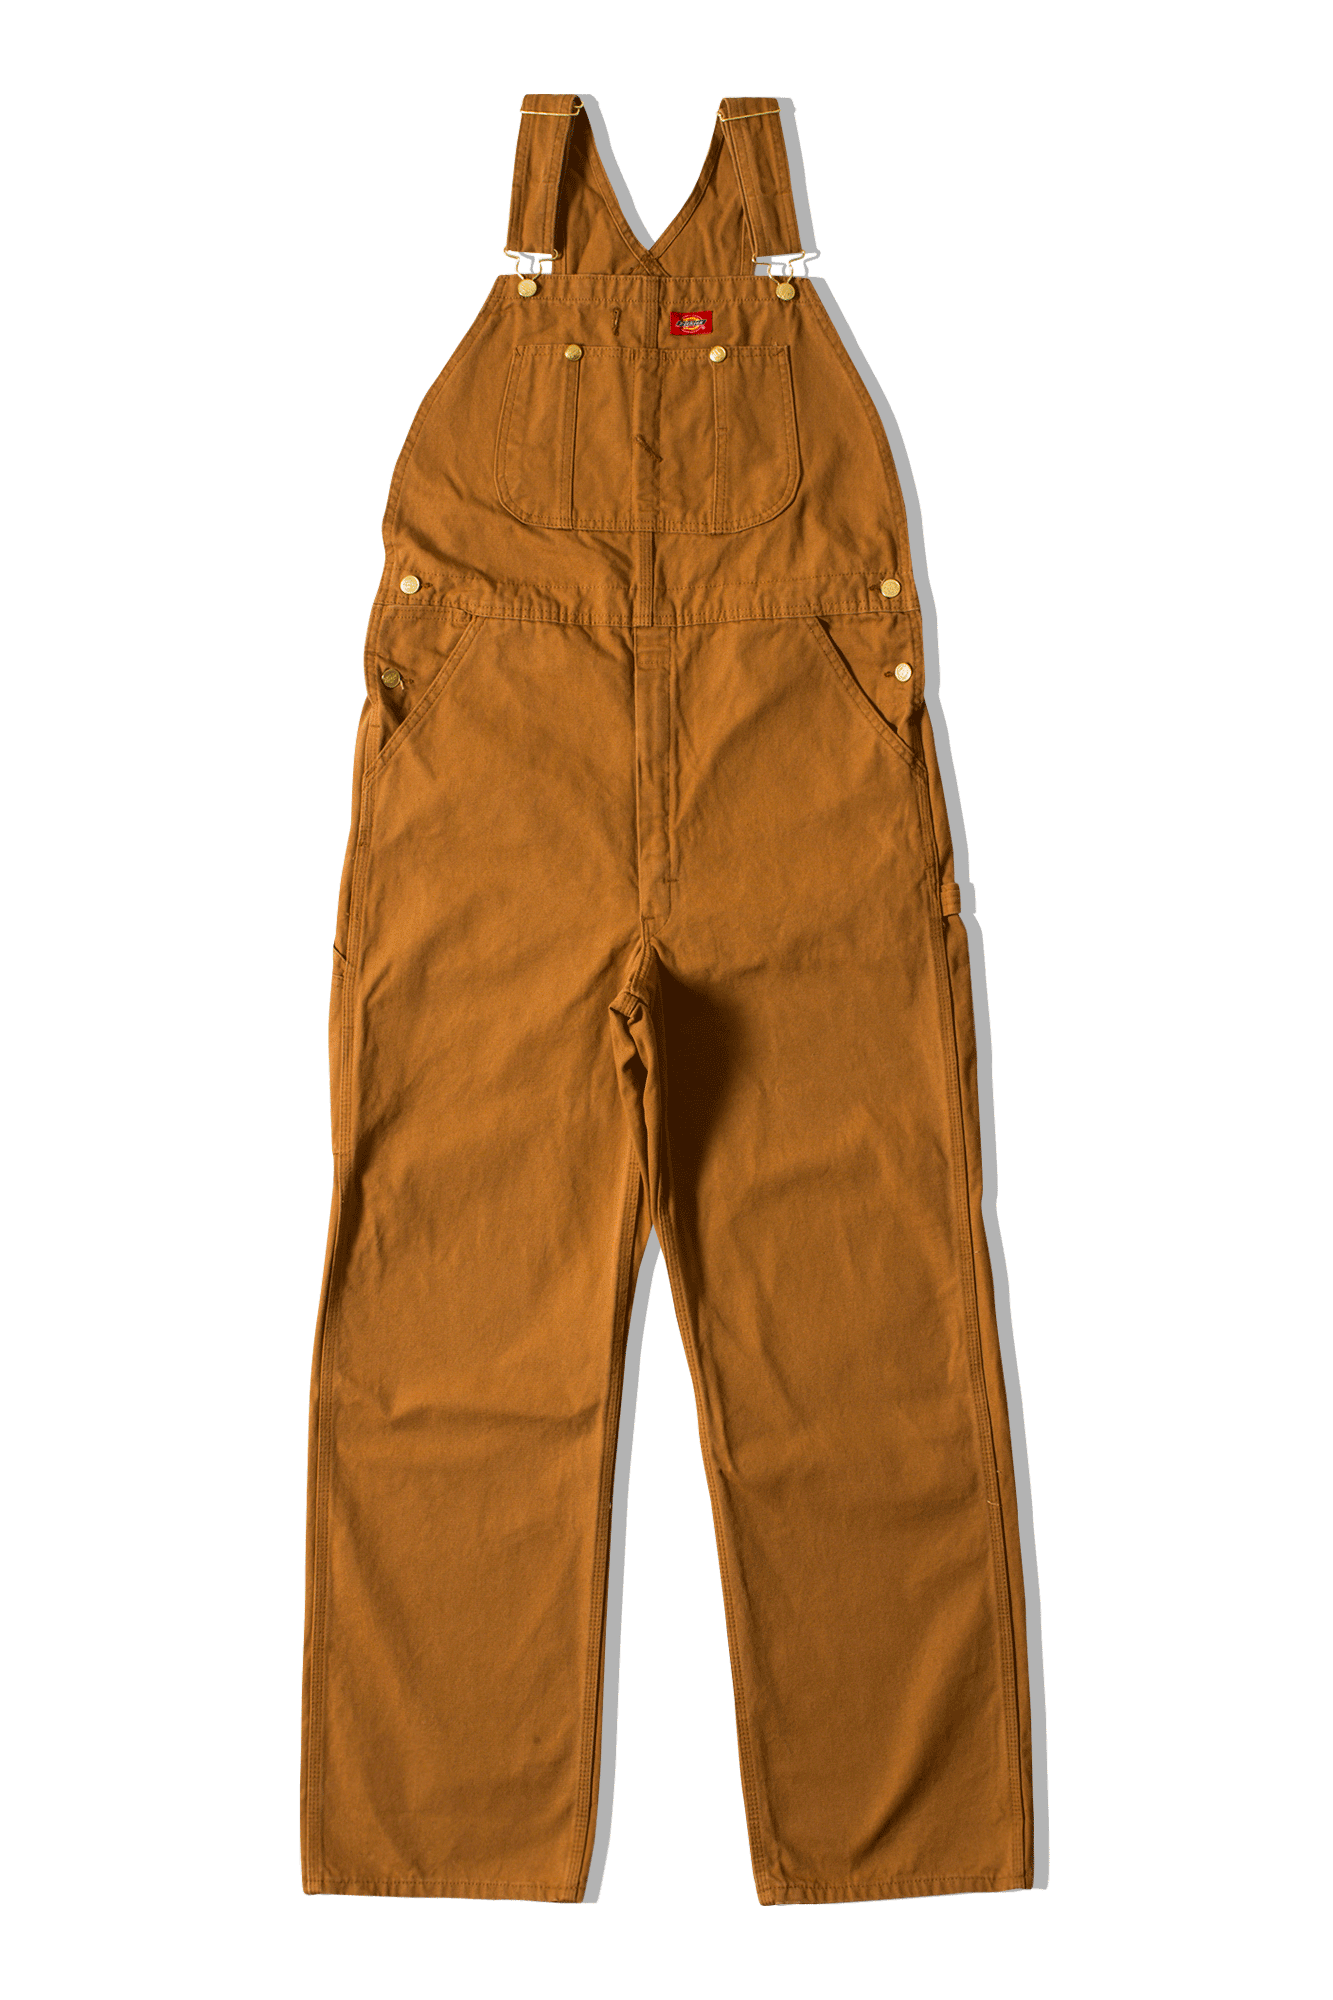 Dickies Salopette Bib Overall Brown 681190067#000#RBD#27 - One Block Down